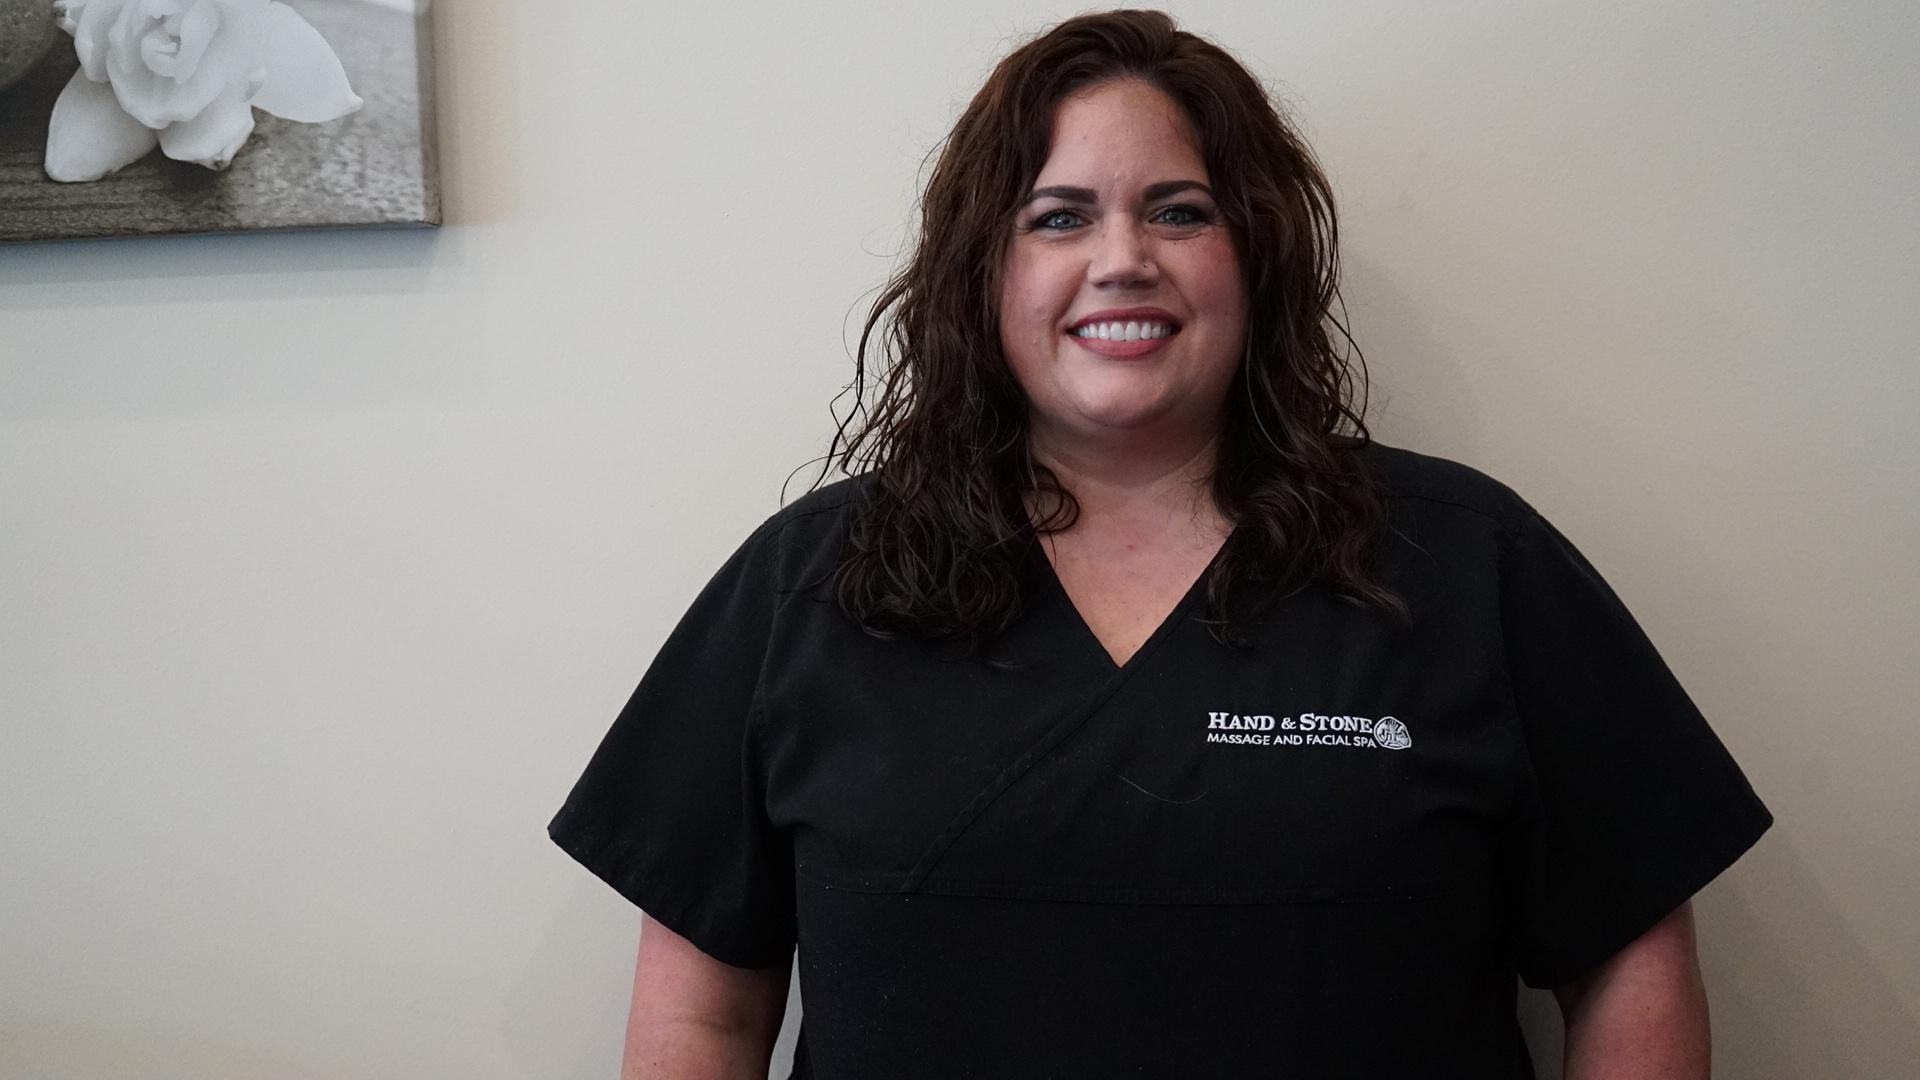 Heather K. - Lead Esthetician & Certified Dermalogica Expert